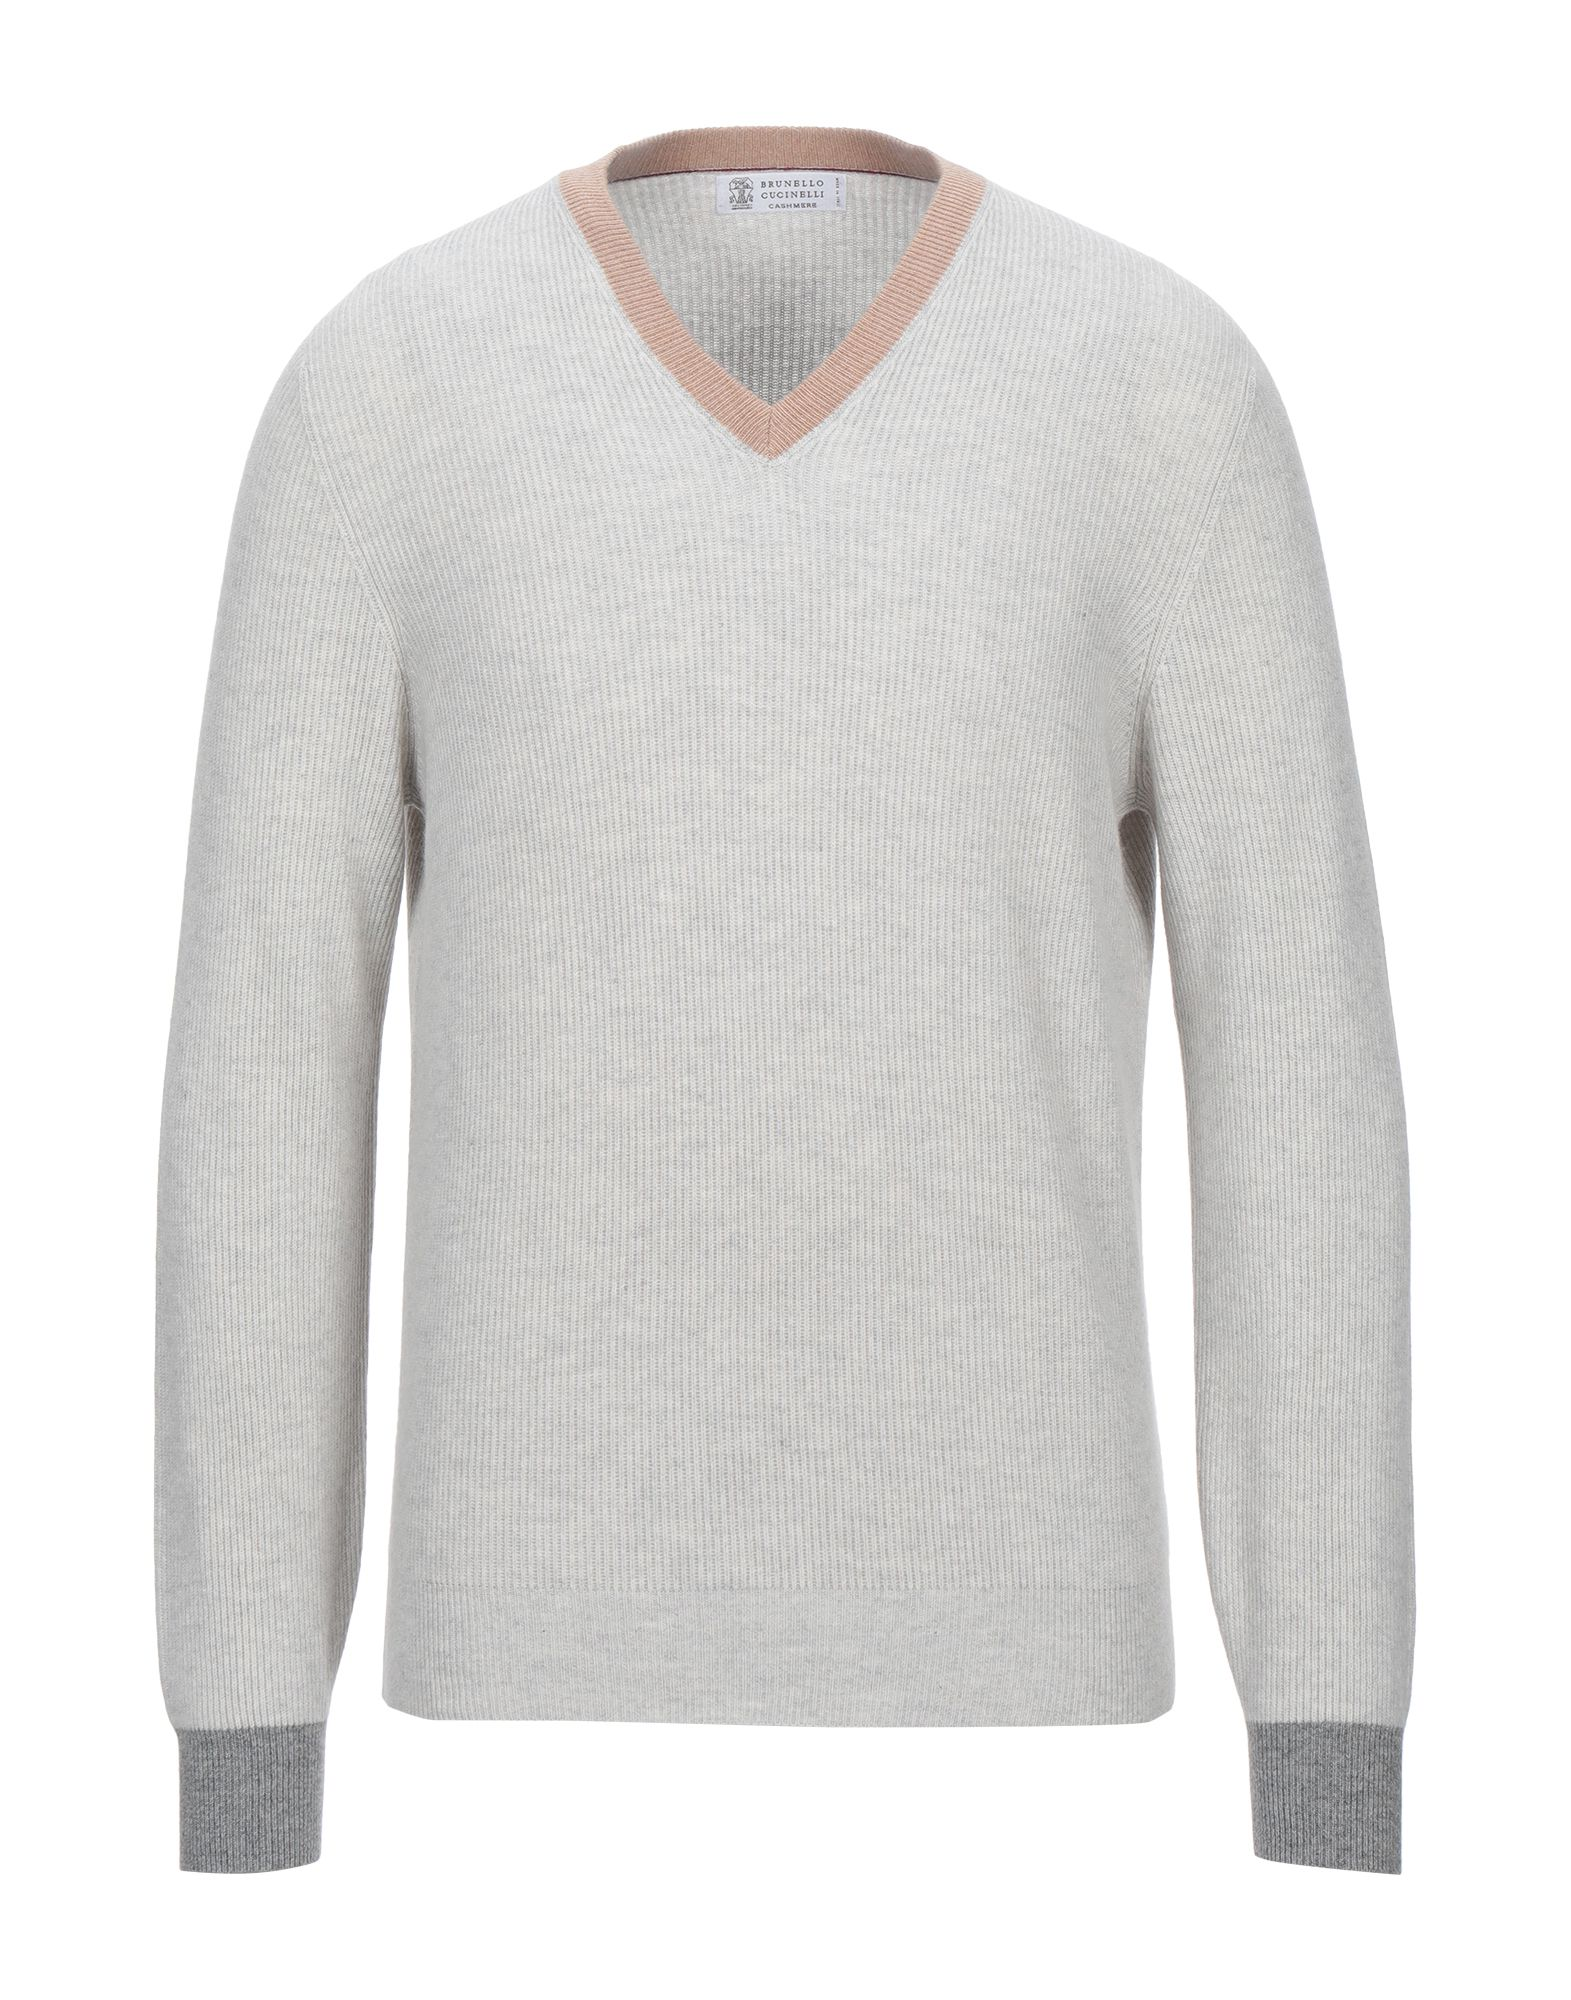 BRUNELLO CUCINELLI Sweaters. knitted, no appliqués, v-neck, multicolor pattern, long sleeves, no pockets, lightweight knit, mélange. 100% Cashmere